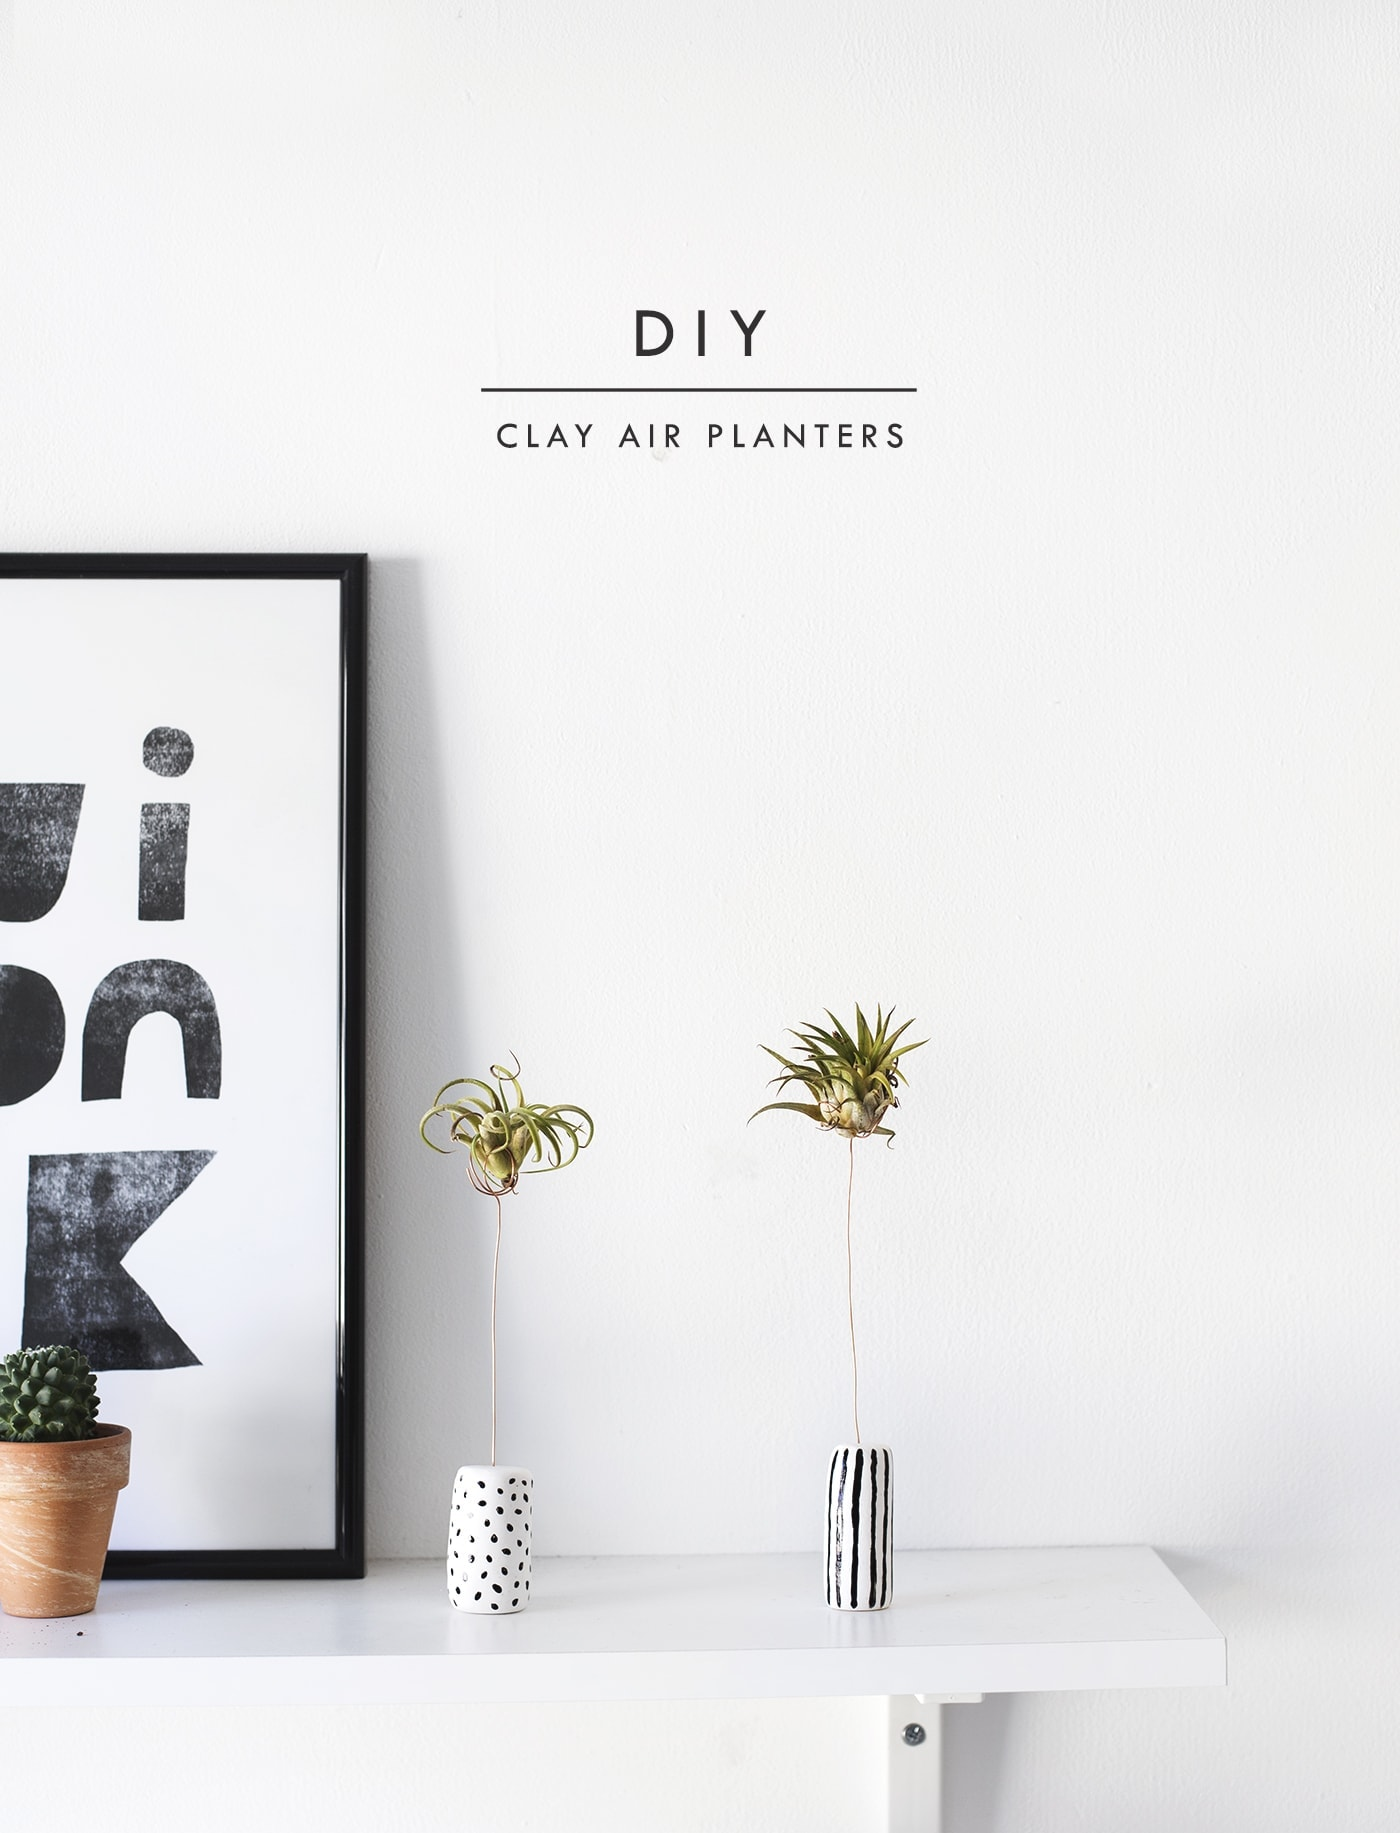 DIY air planters made with clay | easy craft ideas